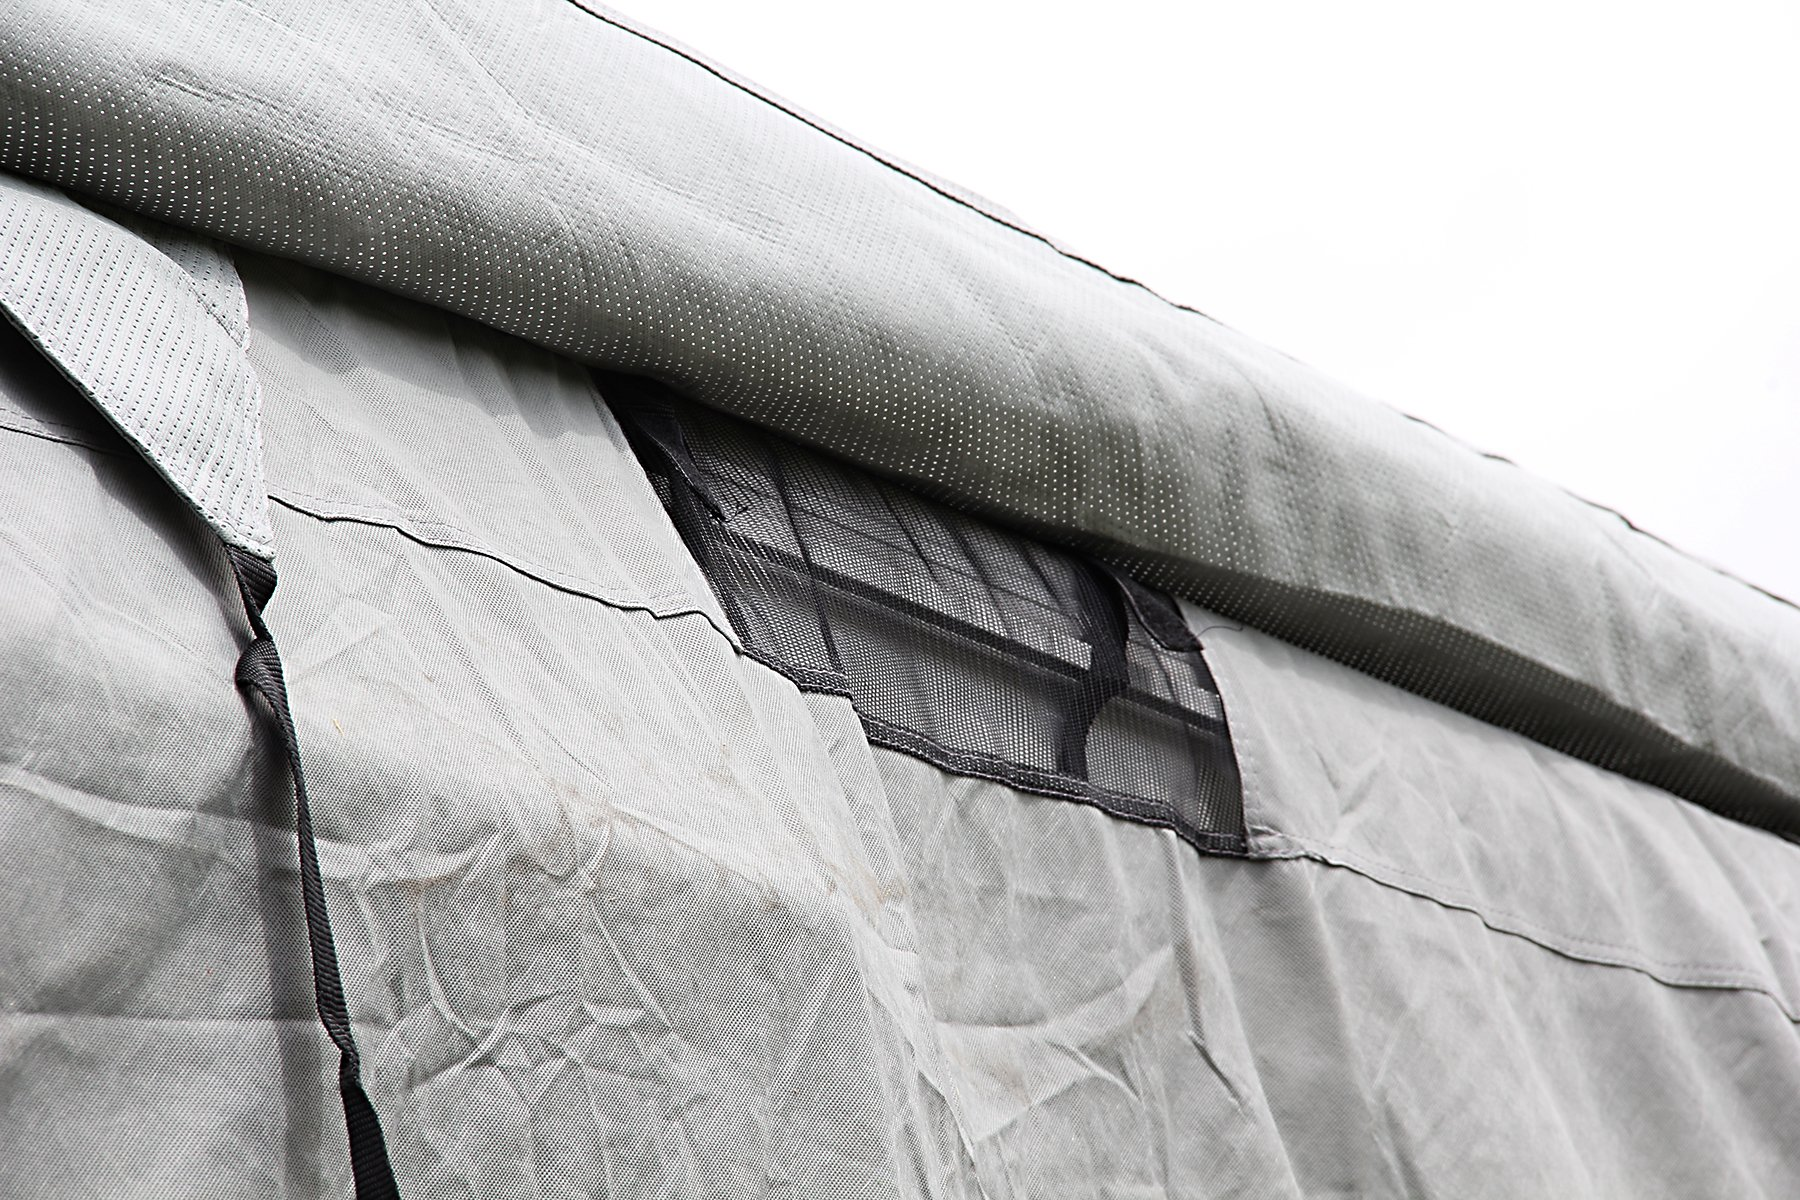 Camco 45781 22' ULTRAGuard Van Cover by Camco